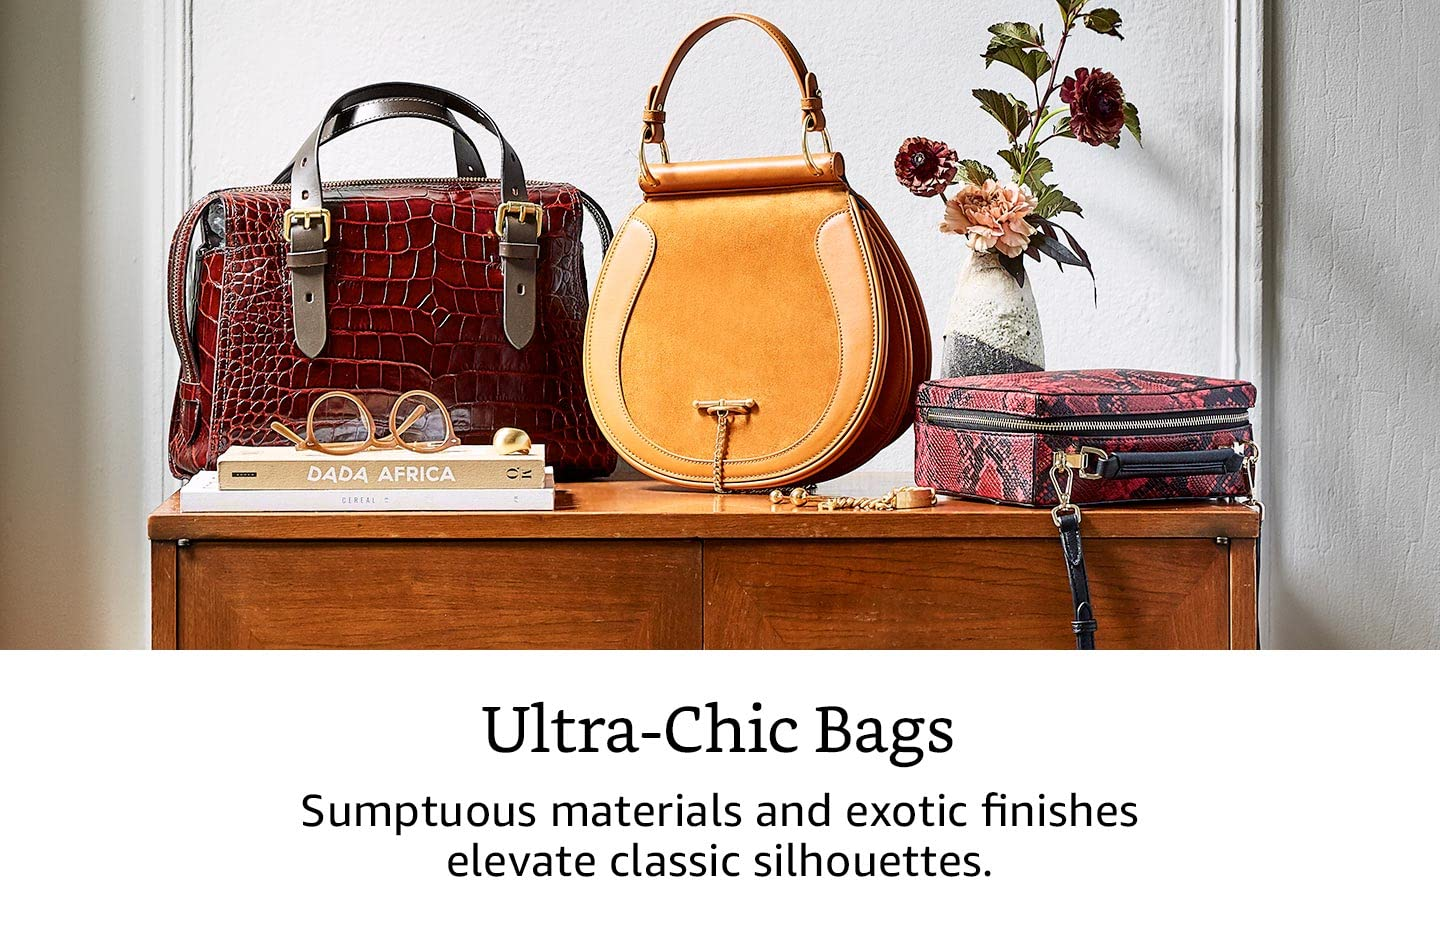 Ultra-Chic Bags